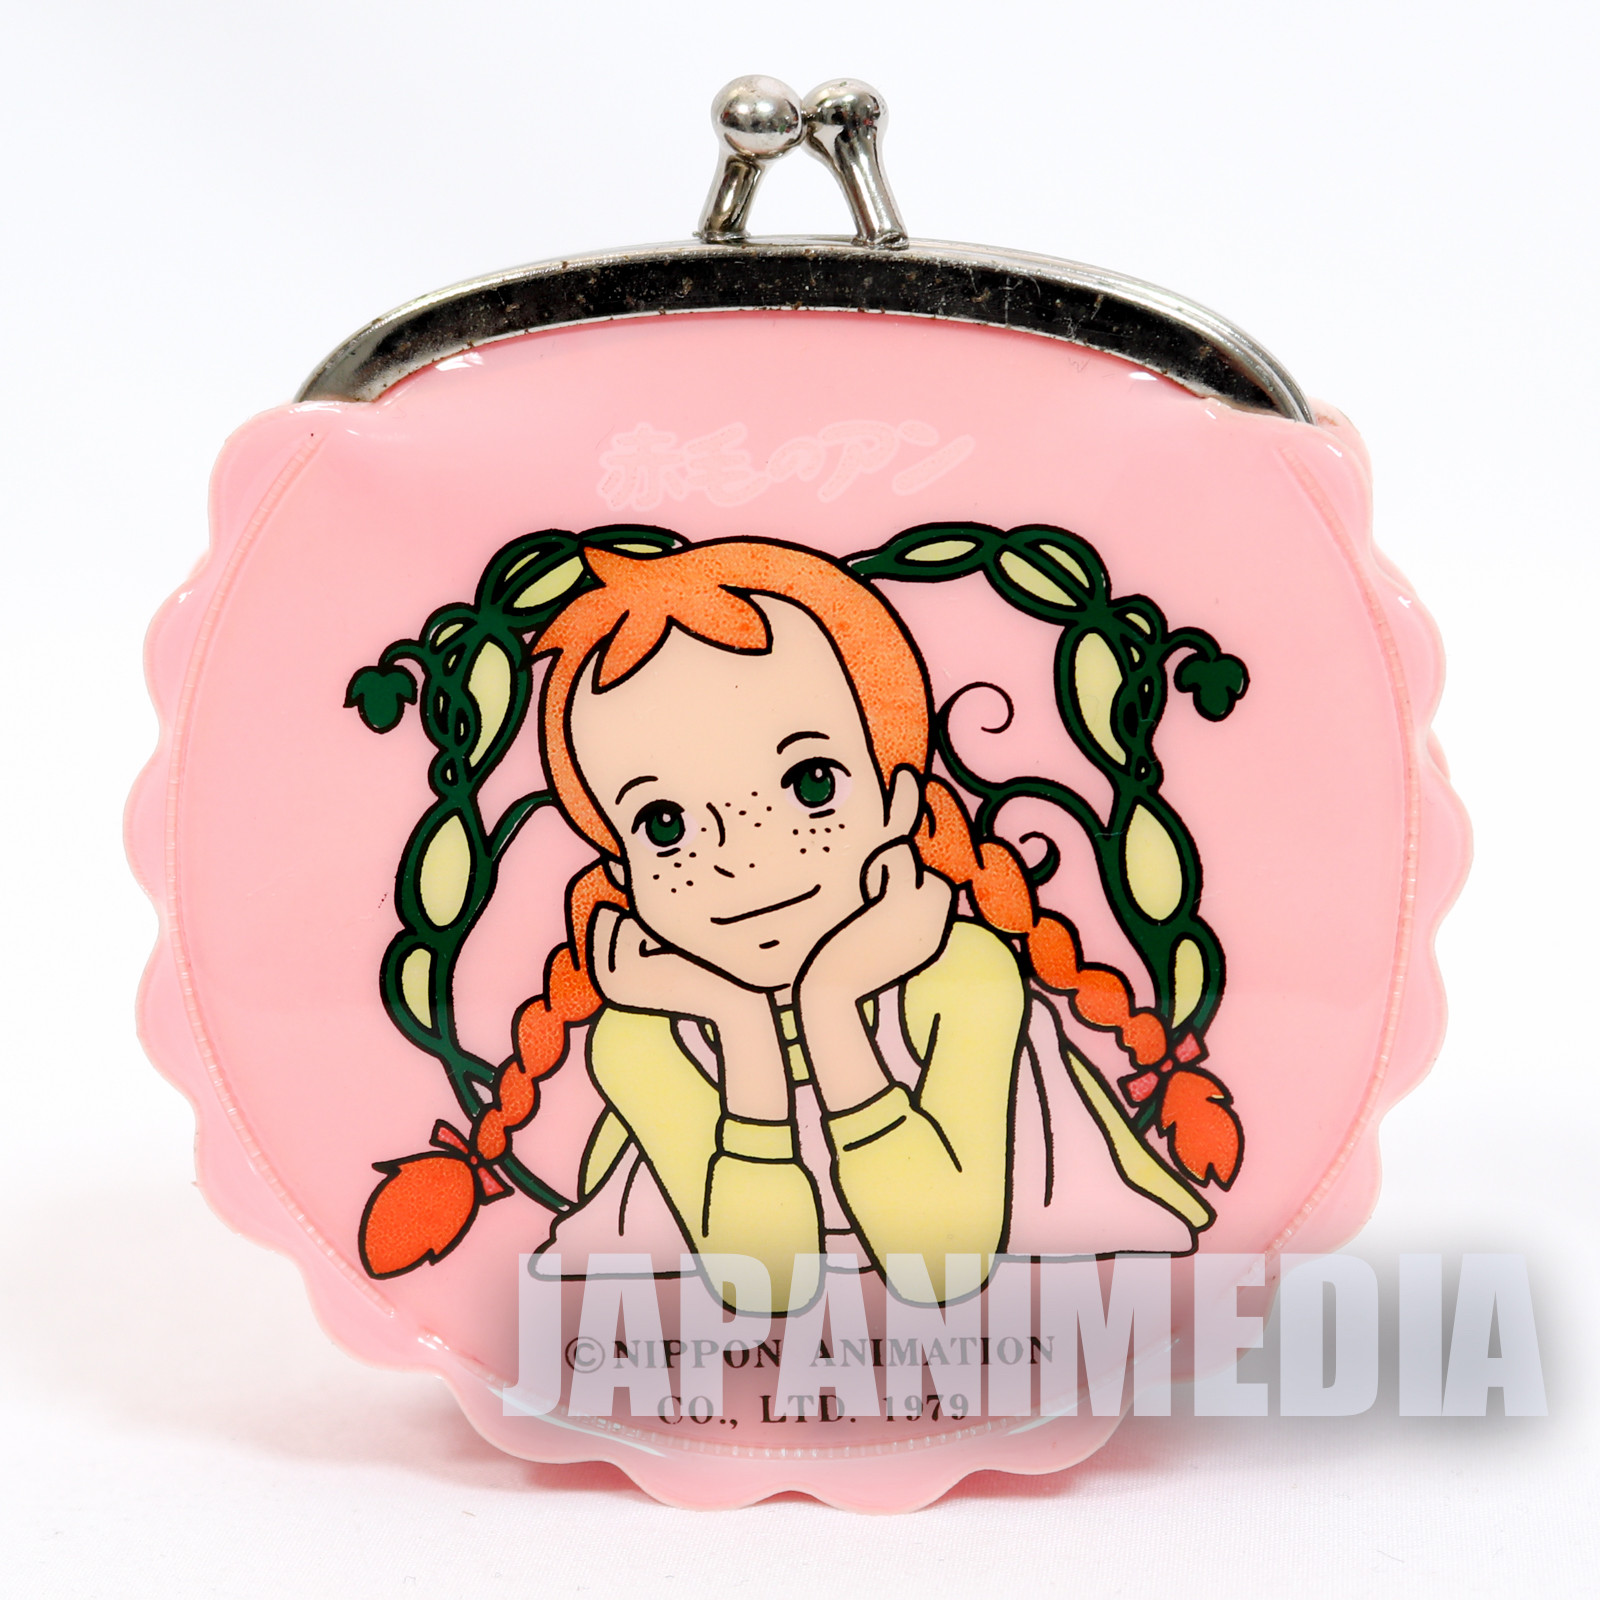 Retro! Anne of Green Gables Purse with a Clasp Coin Case Pink #2 JAPAN ANIME